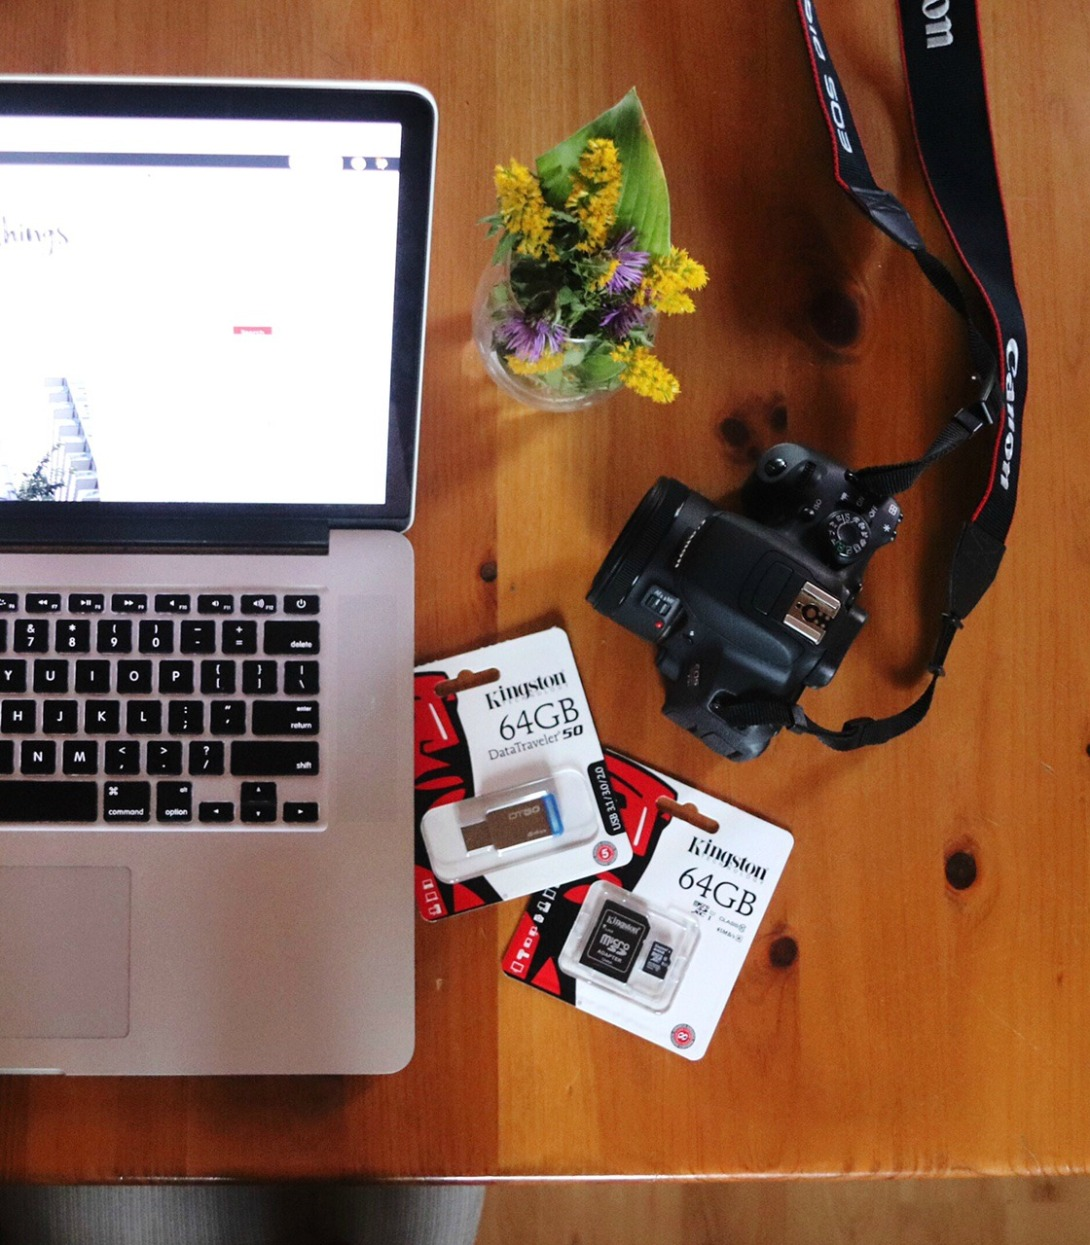 Travel essentials Kingston USB stick and Micro SD card